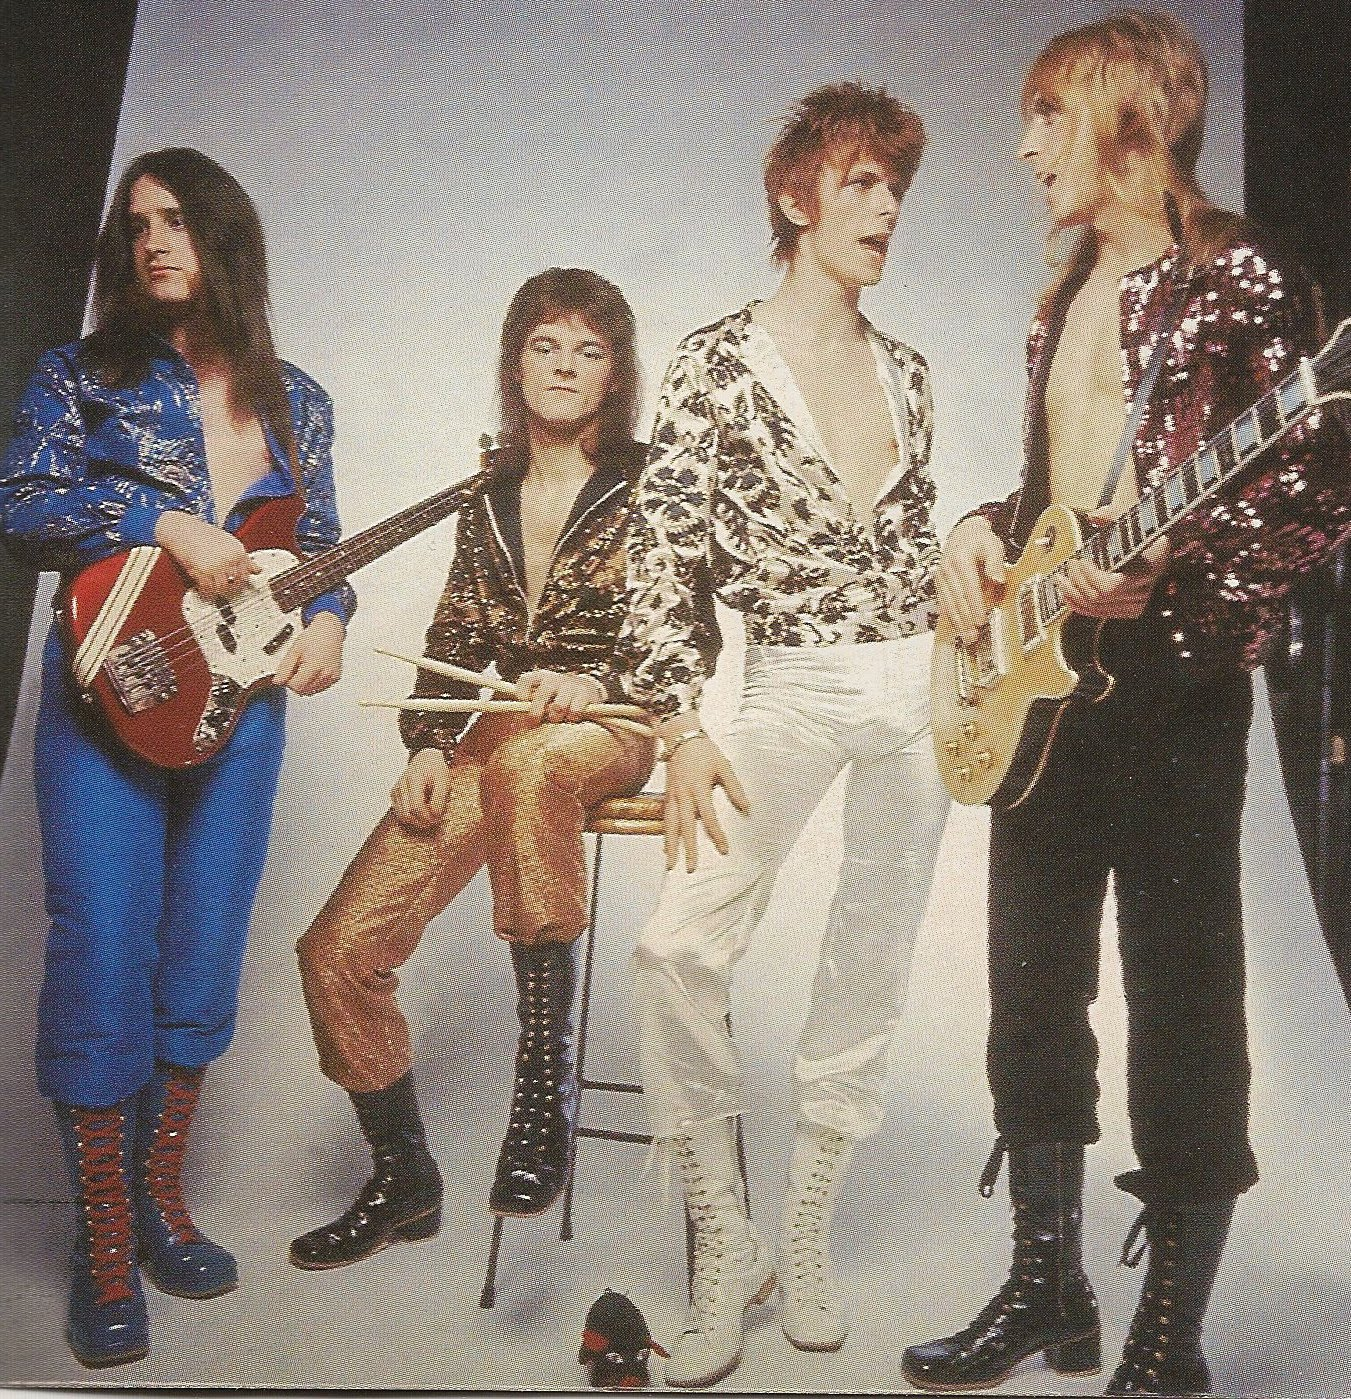 Mostly Random Photos, eh?: David Bowie and the Spiders from Mars